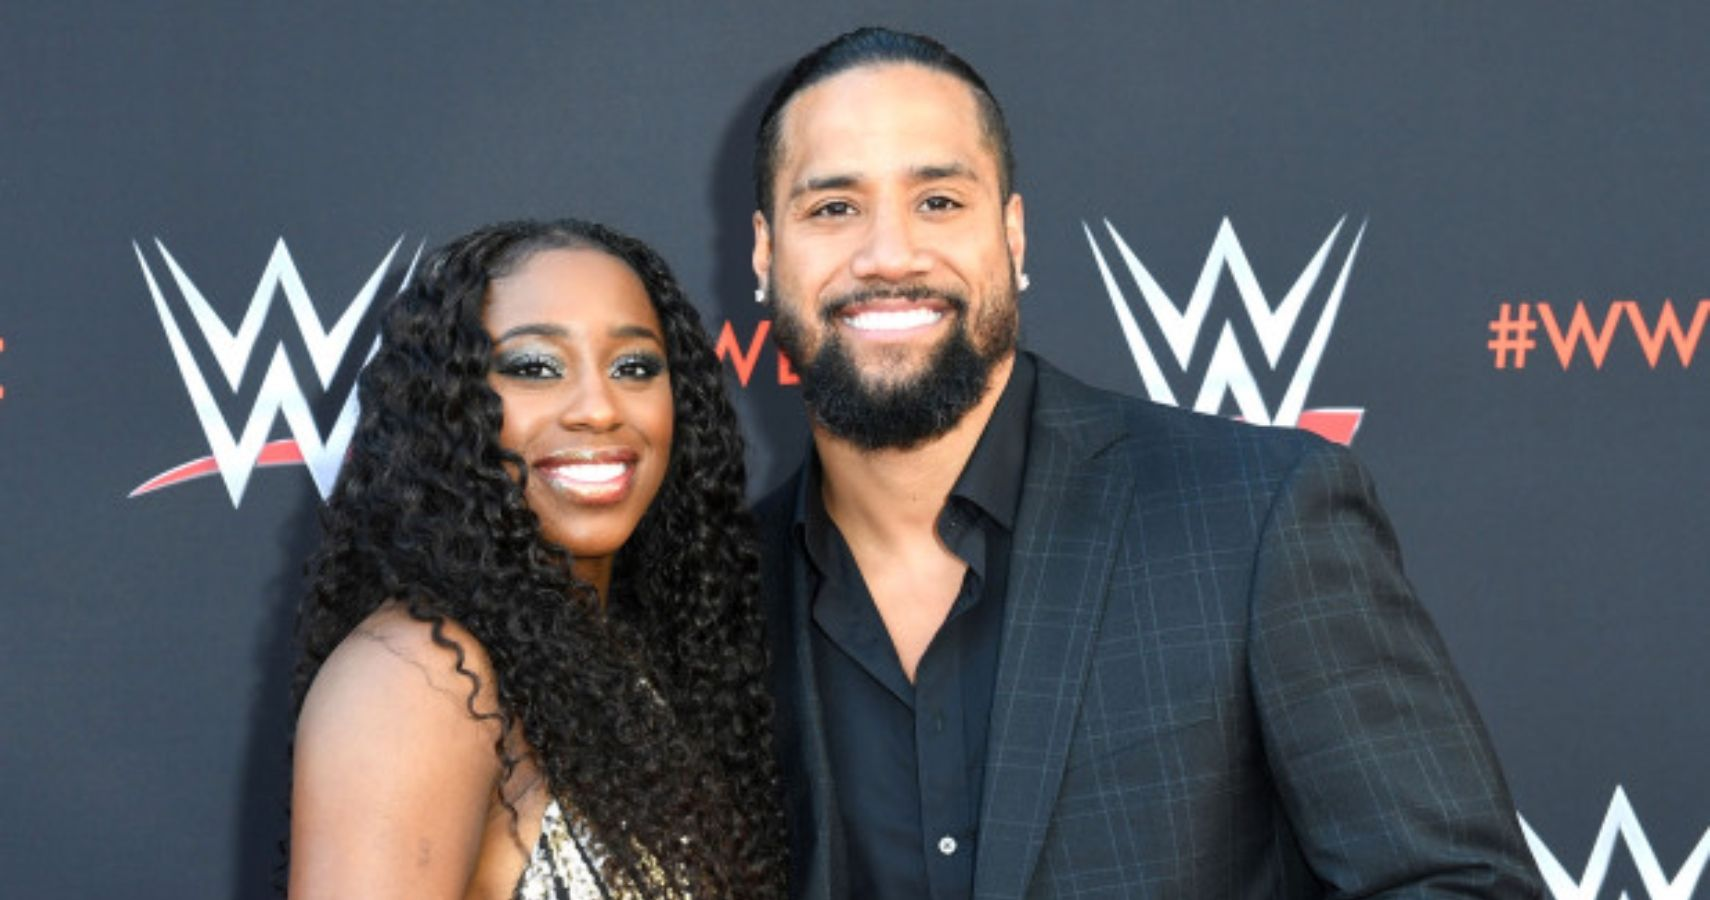 Naomi Uso Body Measurements: Detroit Police Release Footage Of A Shirtless Jimmy Uso